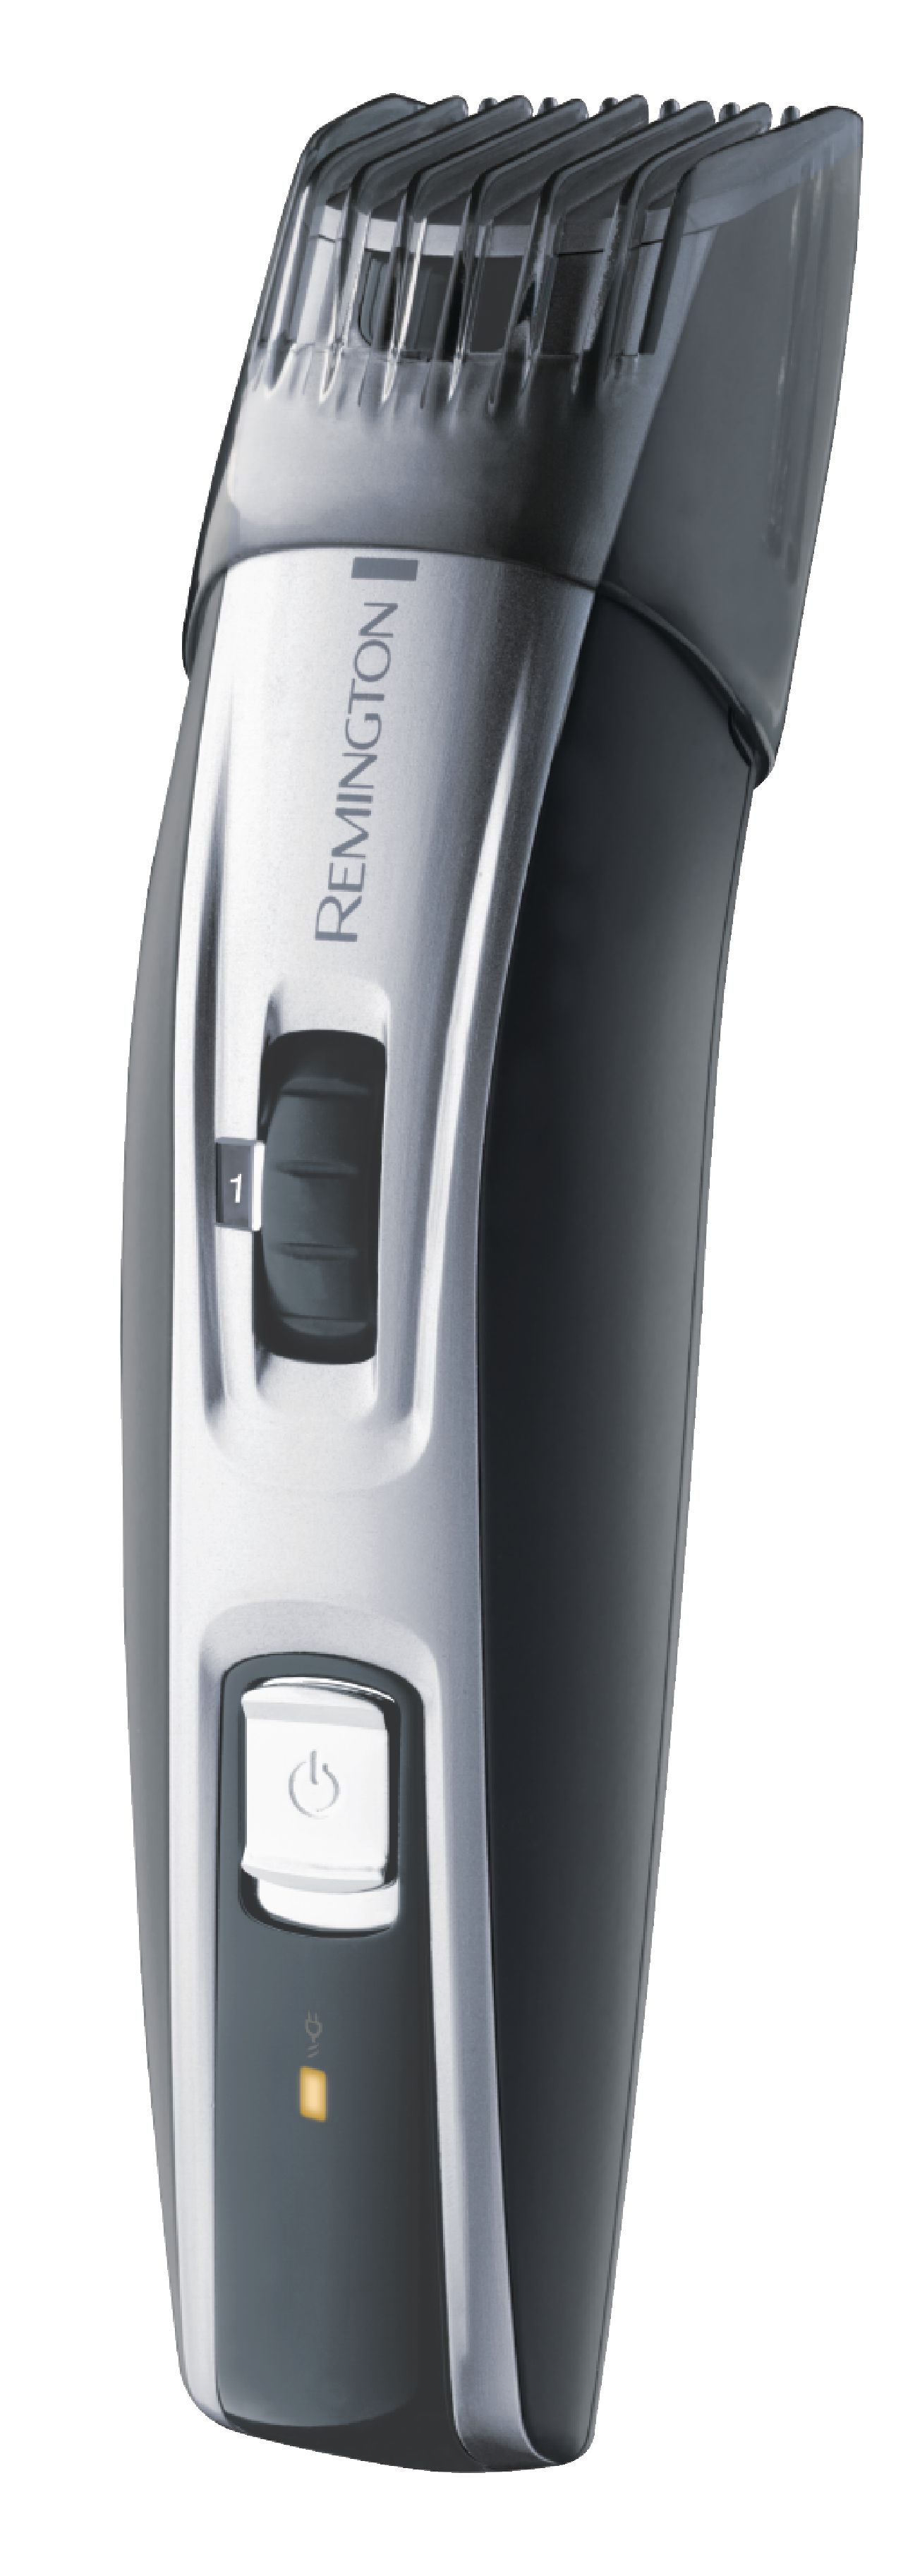 rem mb4030 remington contour beard stubble trimmer electronic. Black Bedroom Furniture Sets. Home Design Ideas